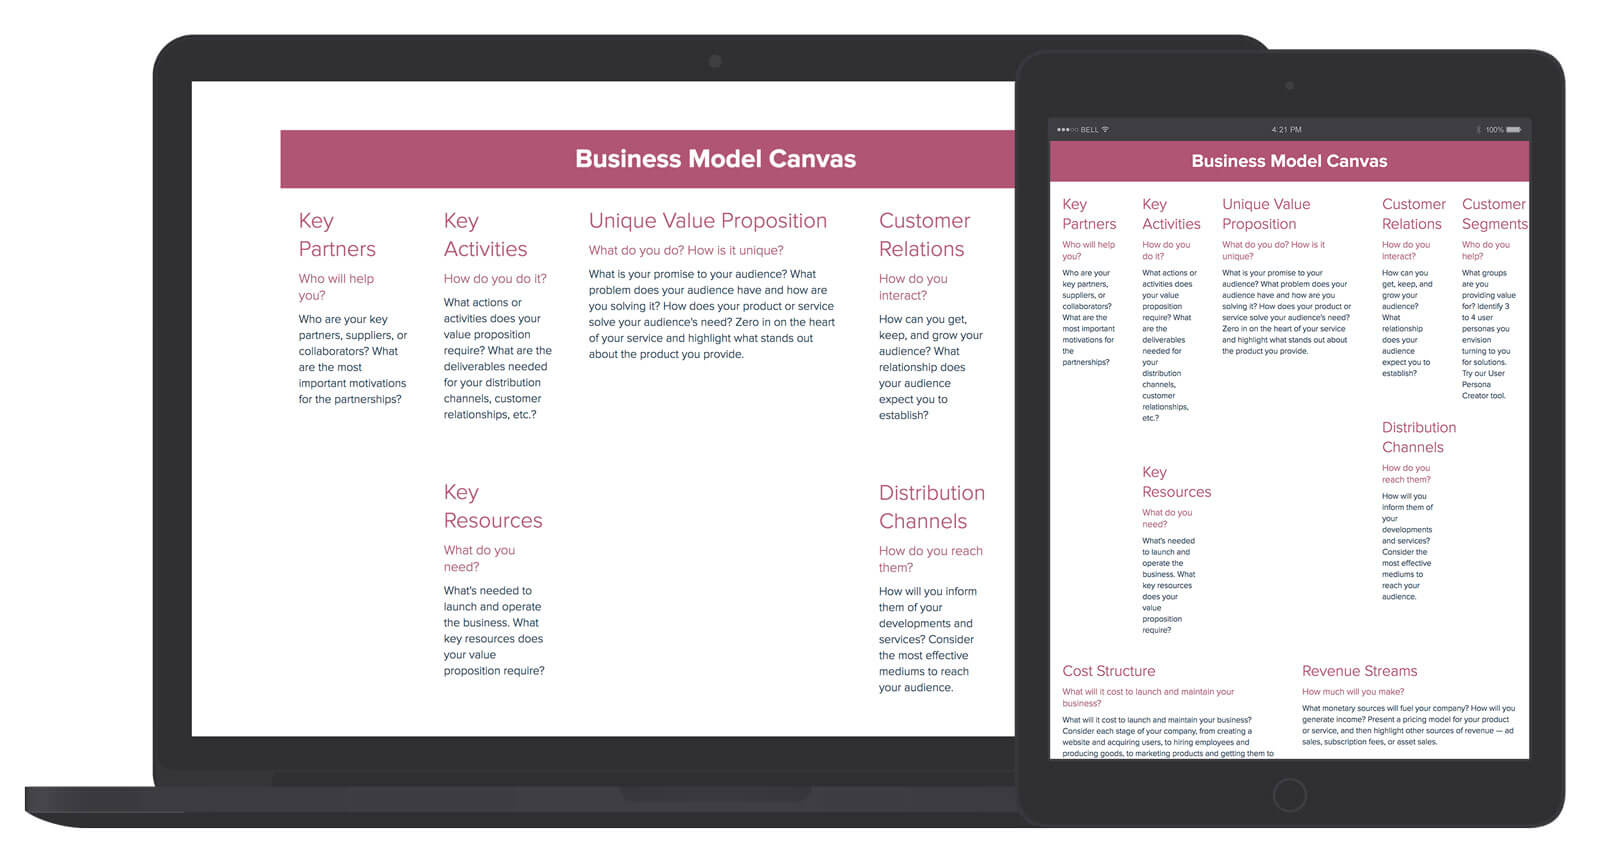 Business model canvas template and examples xtensio pin it on pinterest xtensio small business business model canvas wajeb Image collections